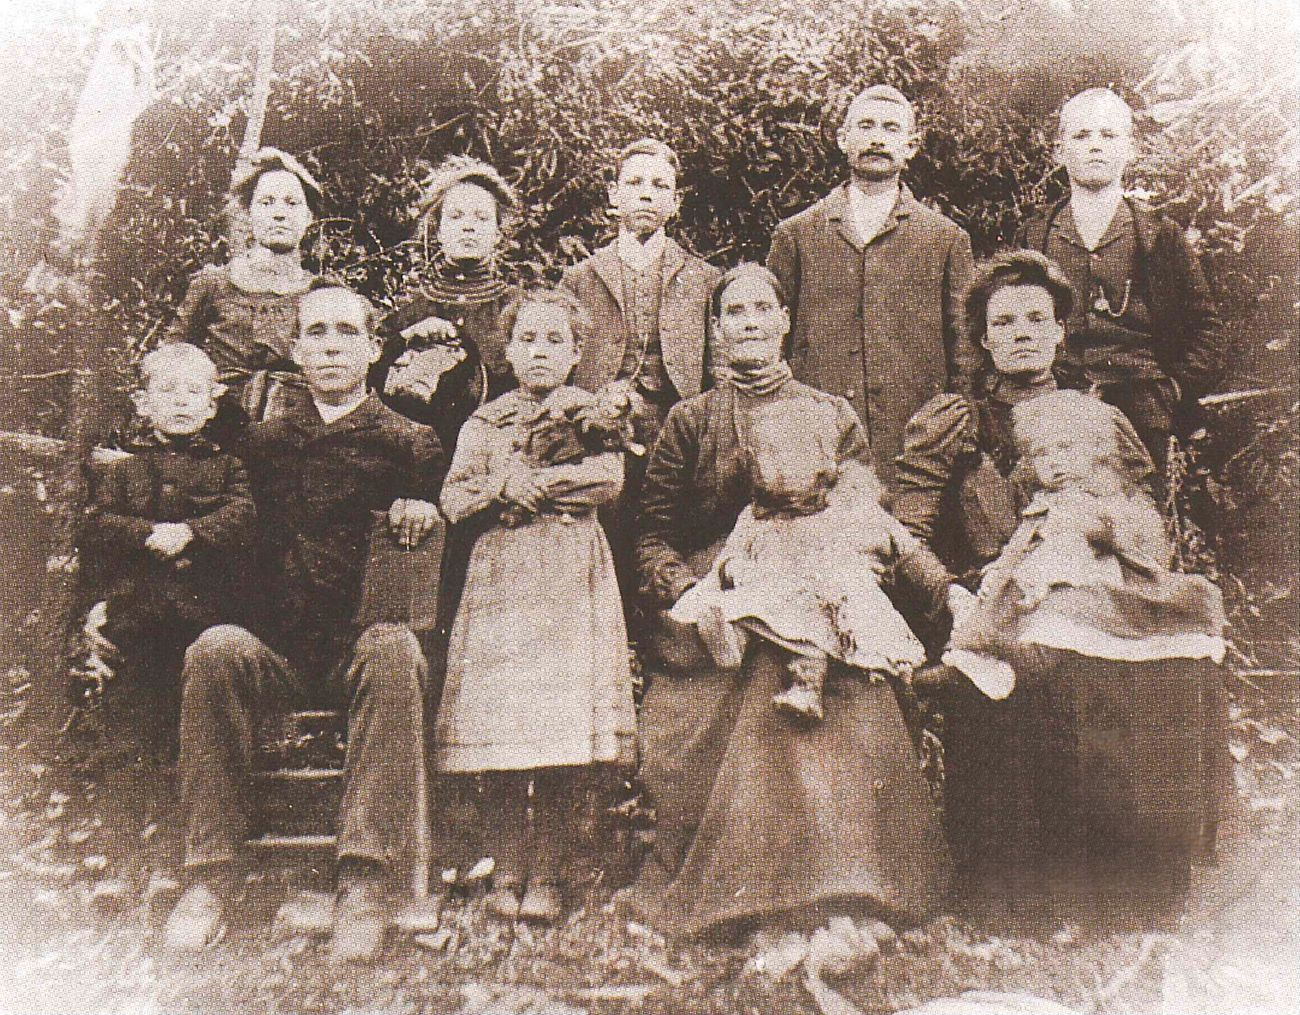 Will Bryant (seated left) and his family about 1905